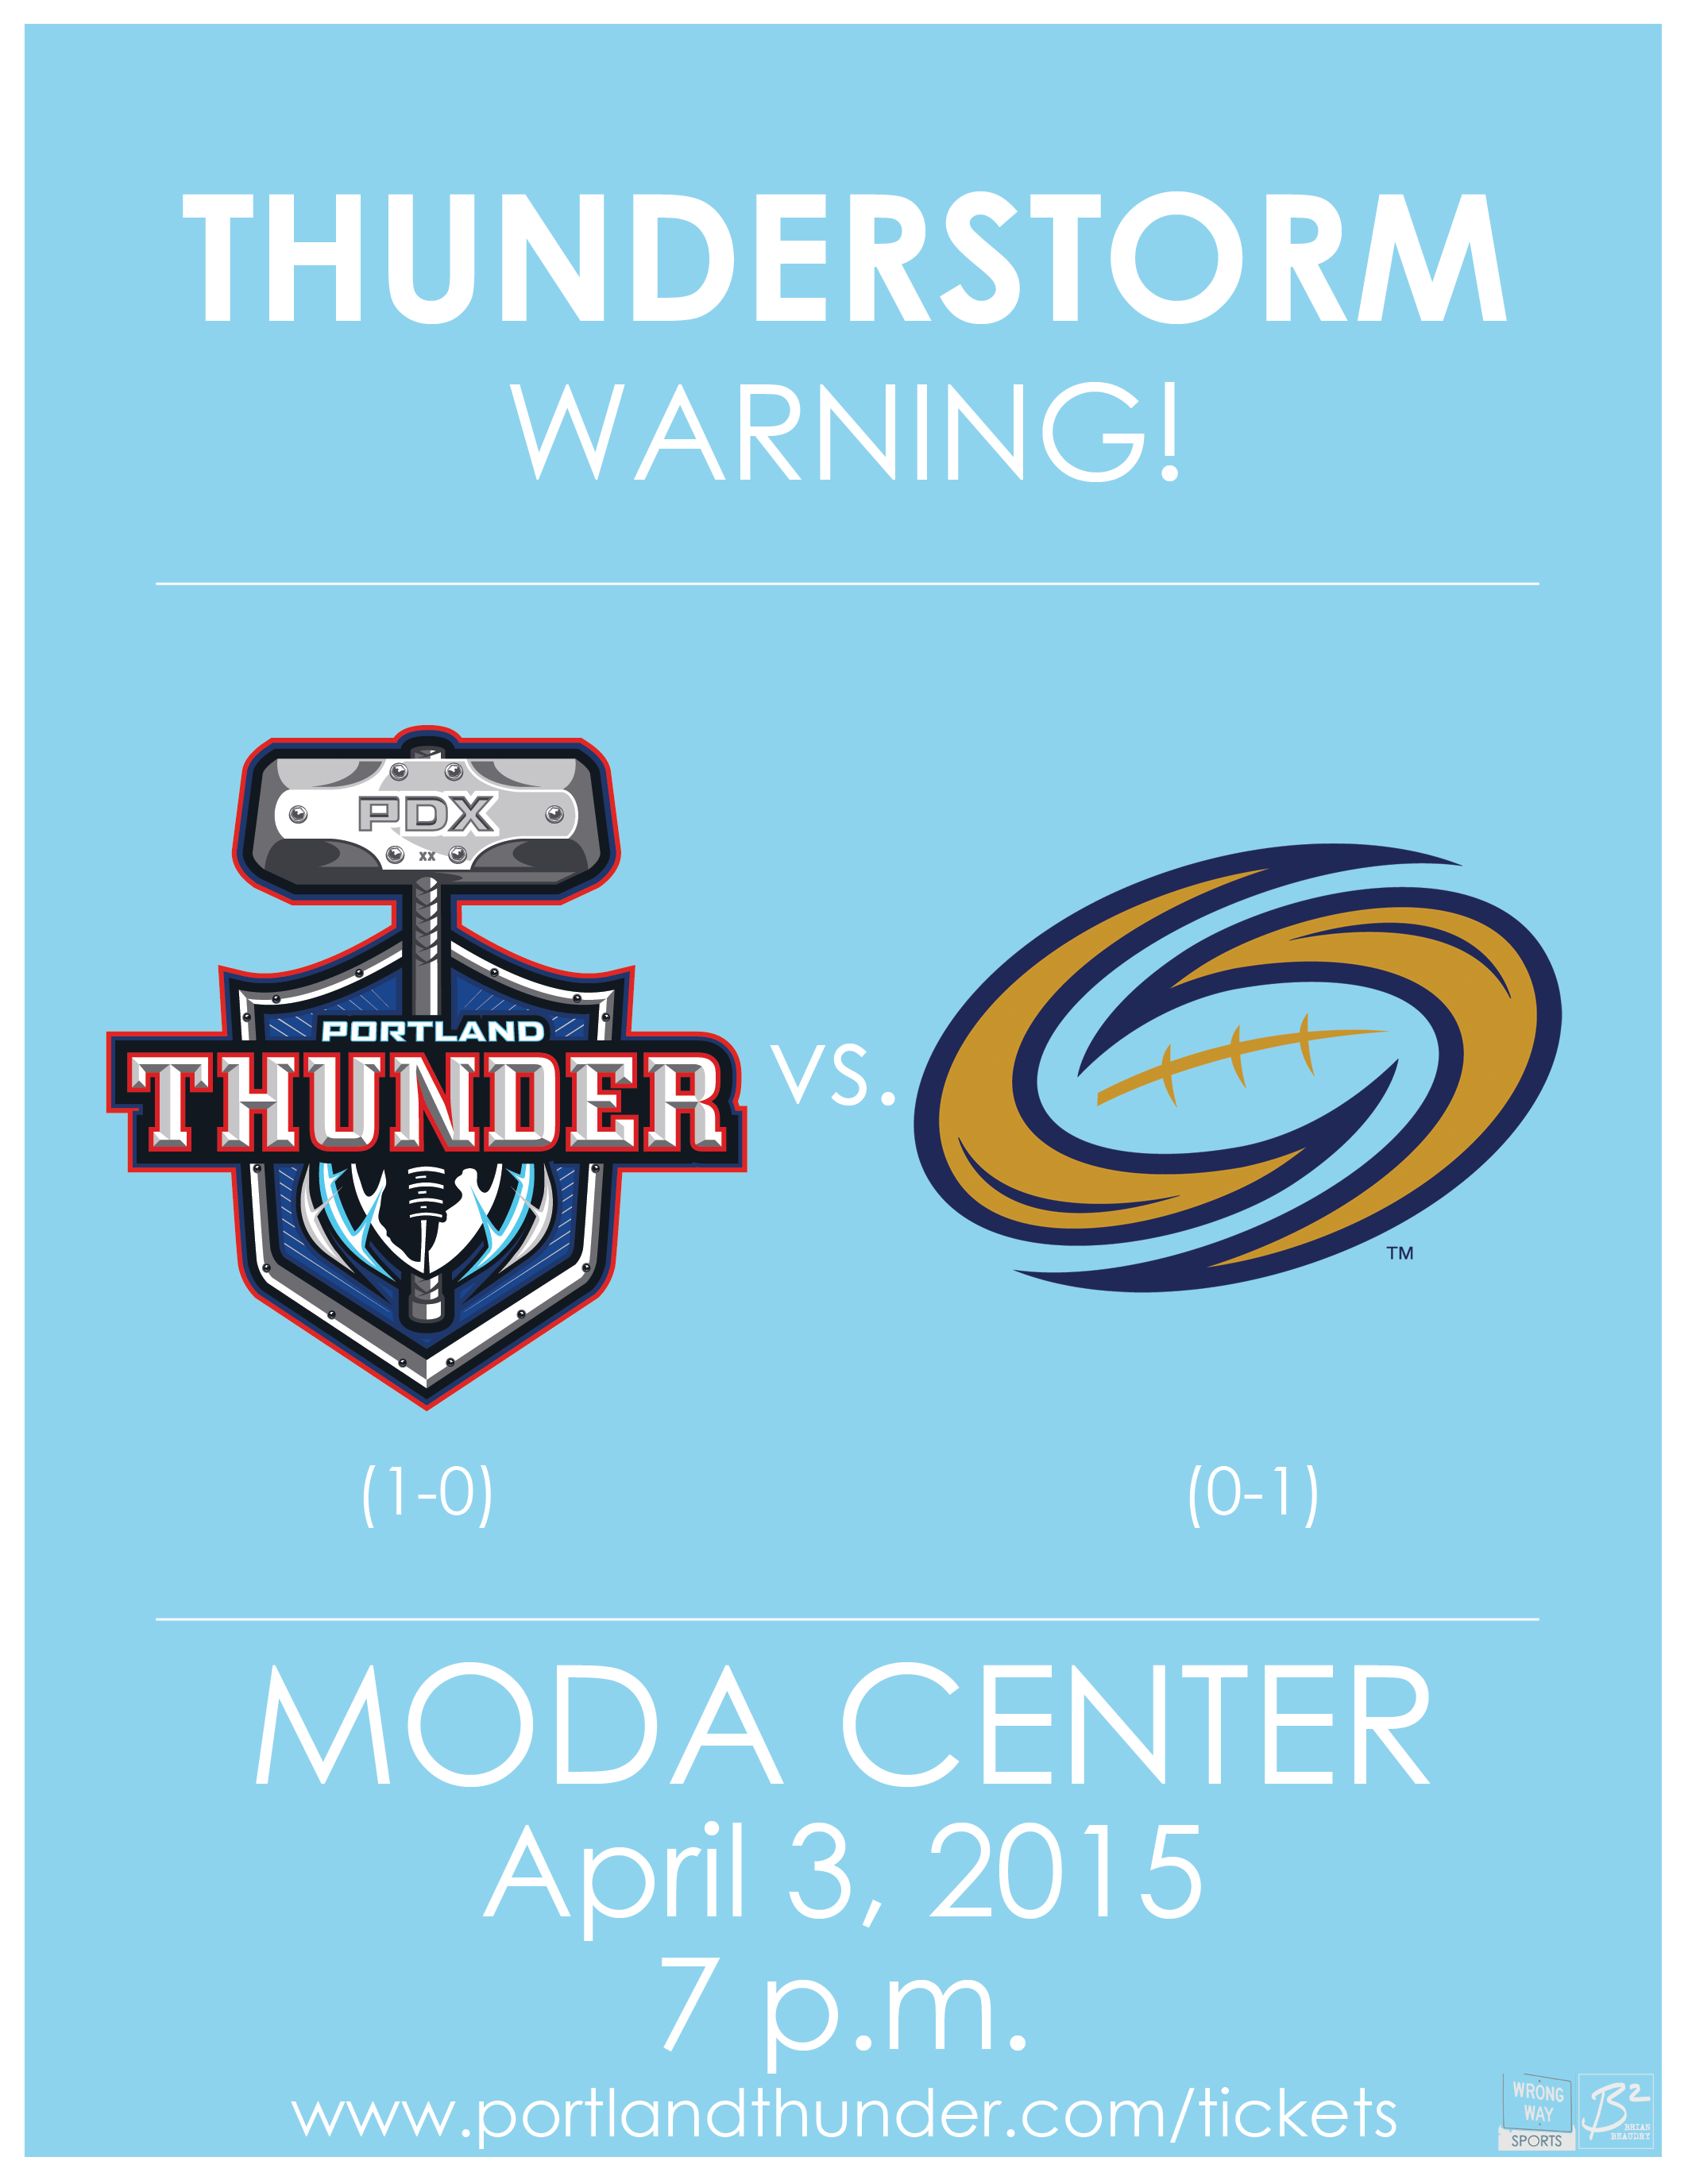 Thunderstorm Warning! Portland Thunder vs. Tampa Bay Storm at the Moda Center. April 3, 2015. 7 p.m. Get tickets at www.portlandthunder.com.